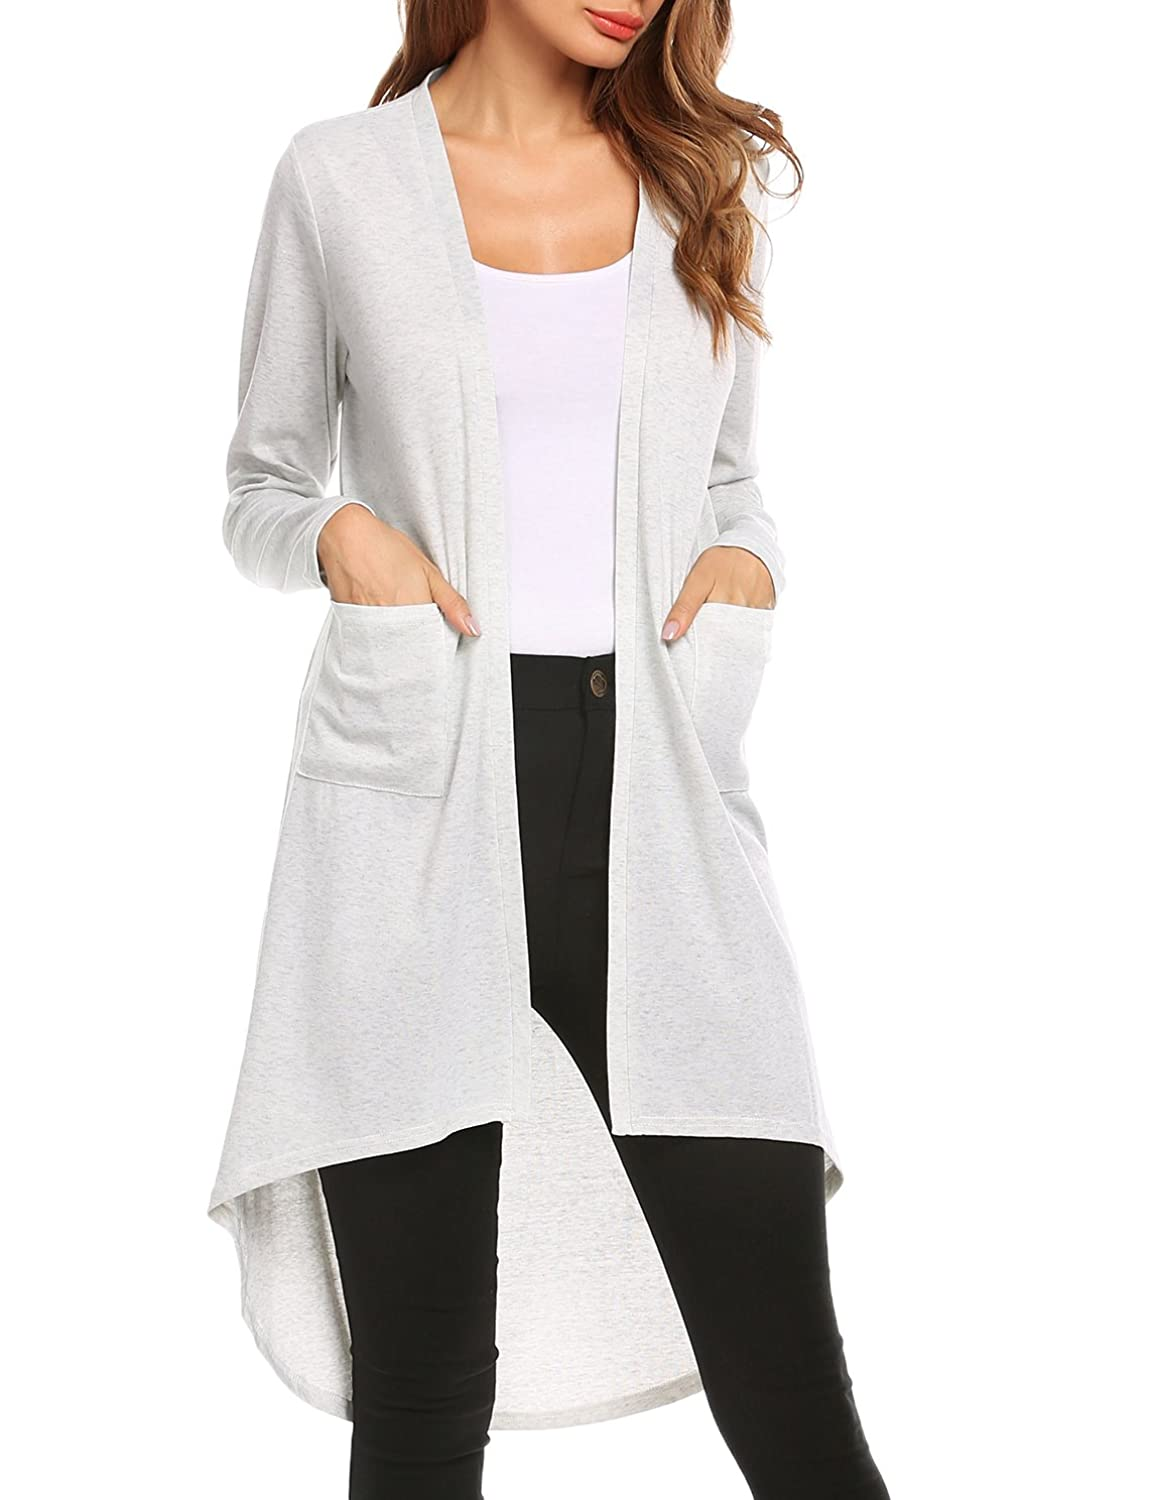 b42ec8f14400 Top9: Zeagoo Women's Lightweight Knitted Open Front Long Duster Cardigan  with Pockets